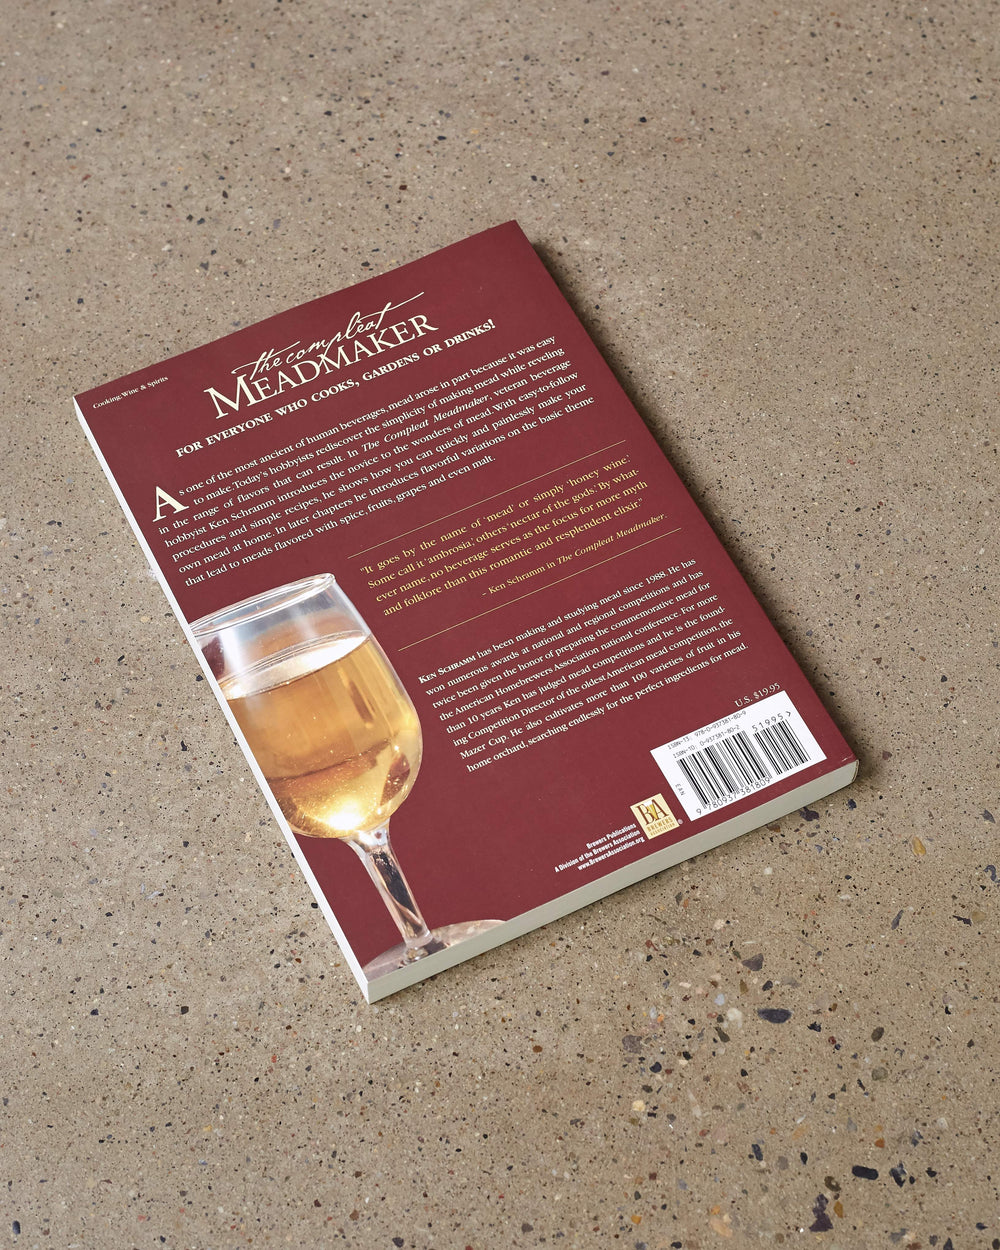 The Compleat Meadmaker - Home Production of Honey Wine from Your First Batch to Award-Winning Fruit and Herb Variations